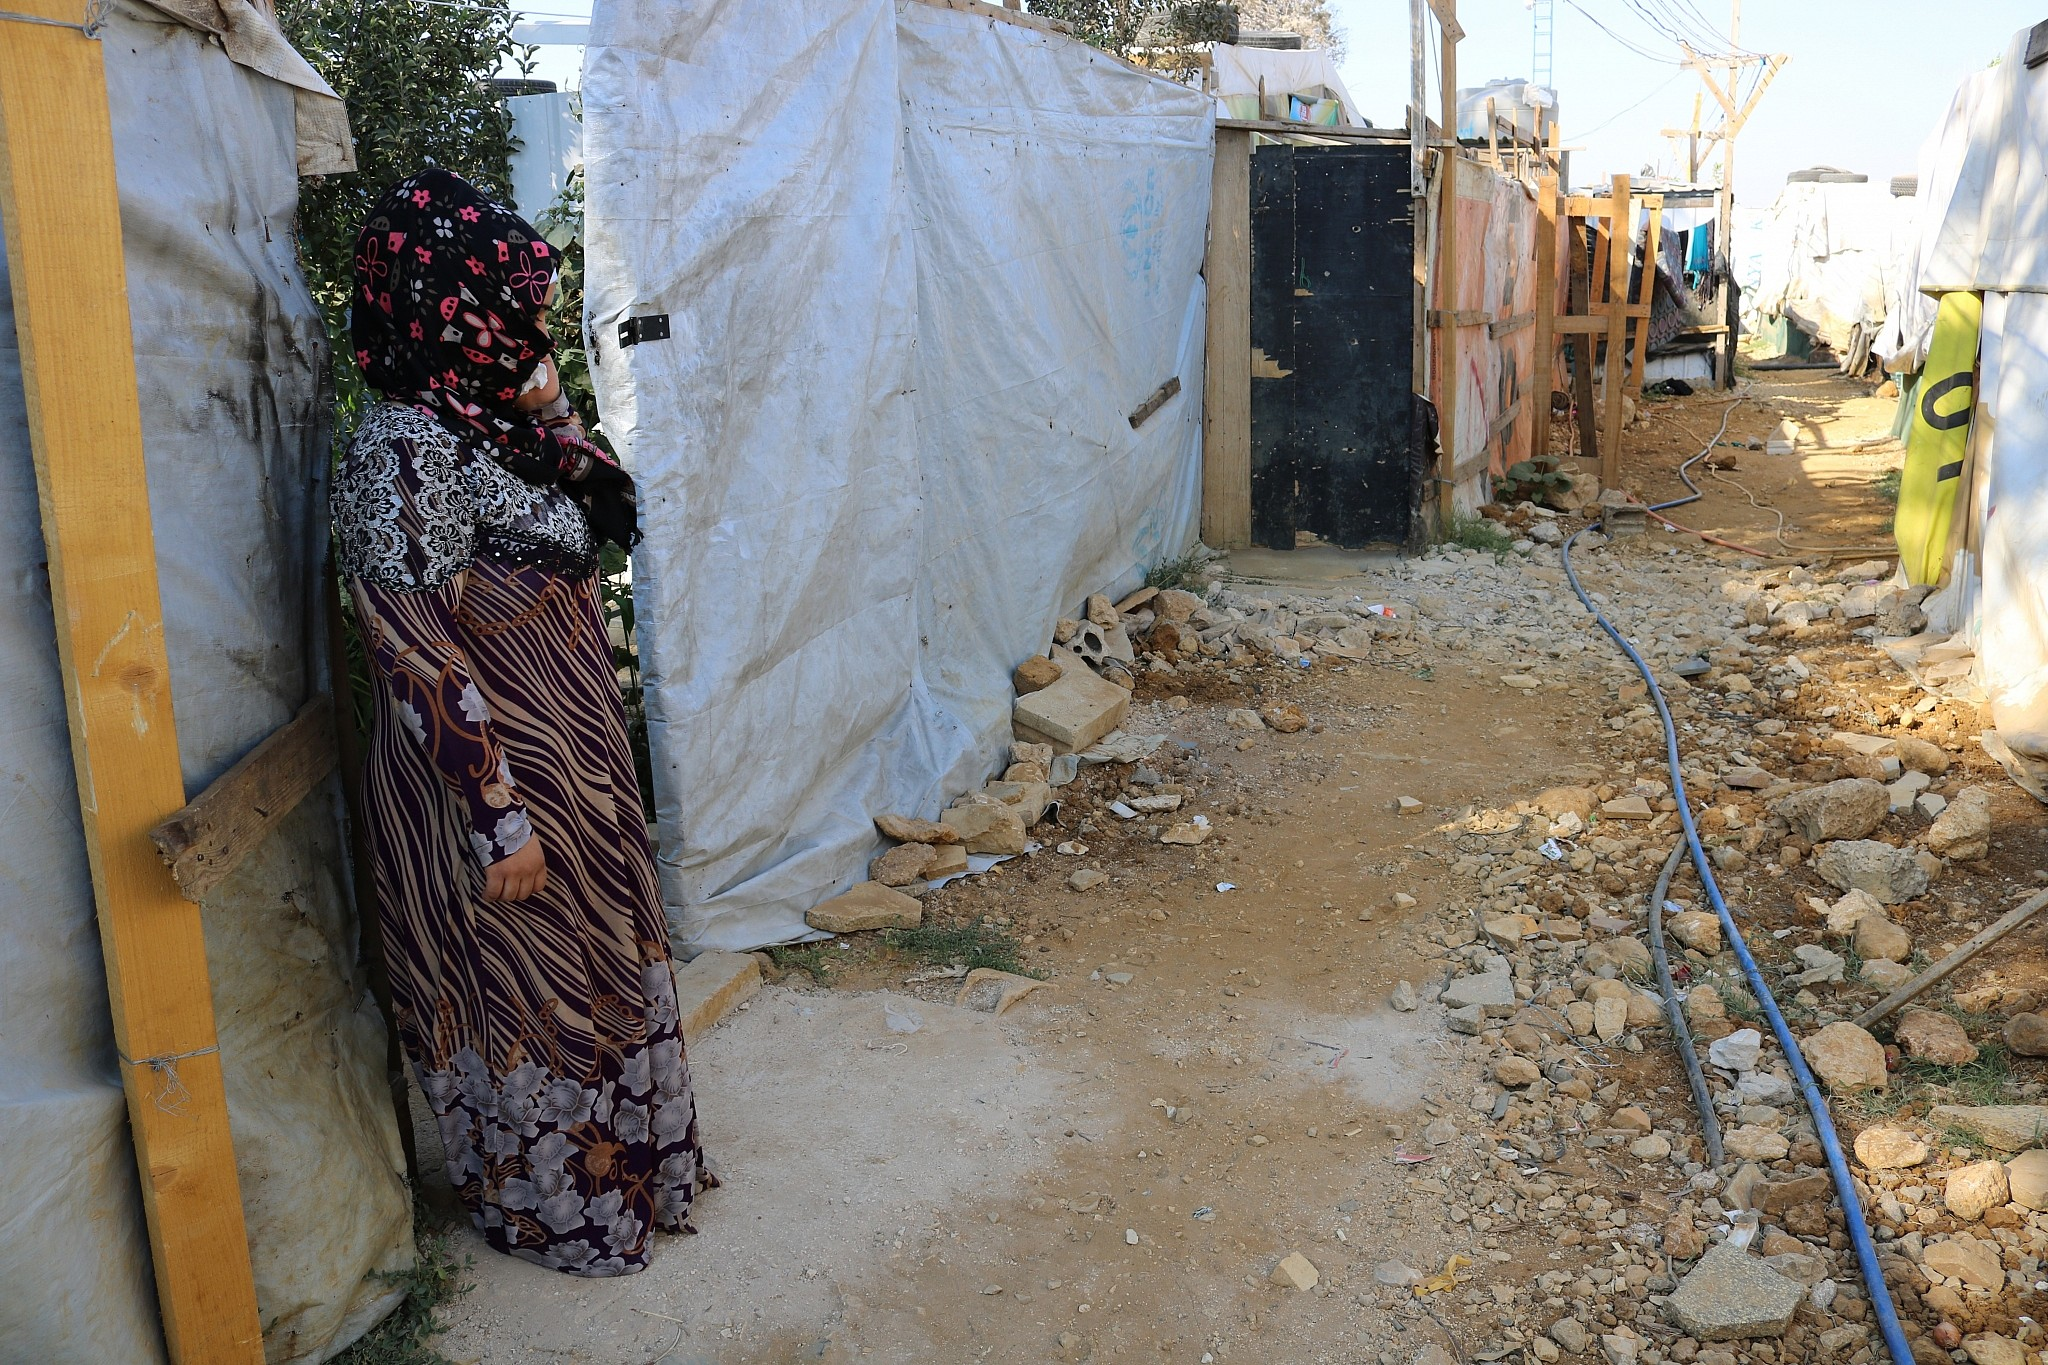 Halima Ali Al Hussein stands outside her family's hut, which she's barely allowed to leave. After getting divorced, she's considered a shame to the community. (Lisa Khoury/ Times of Israel)